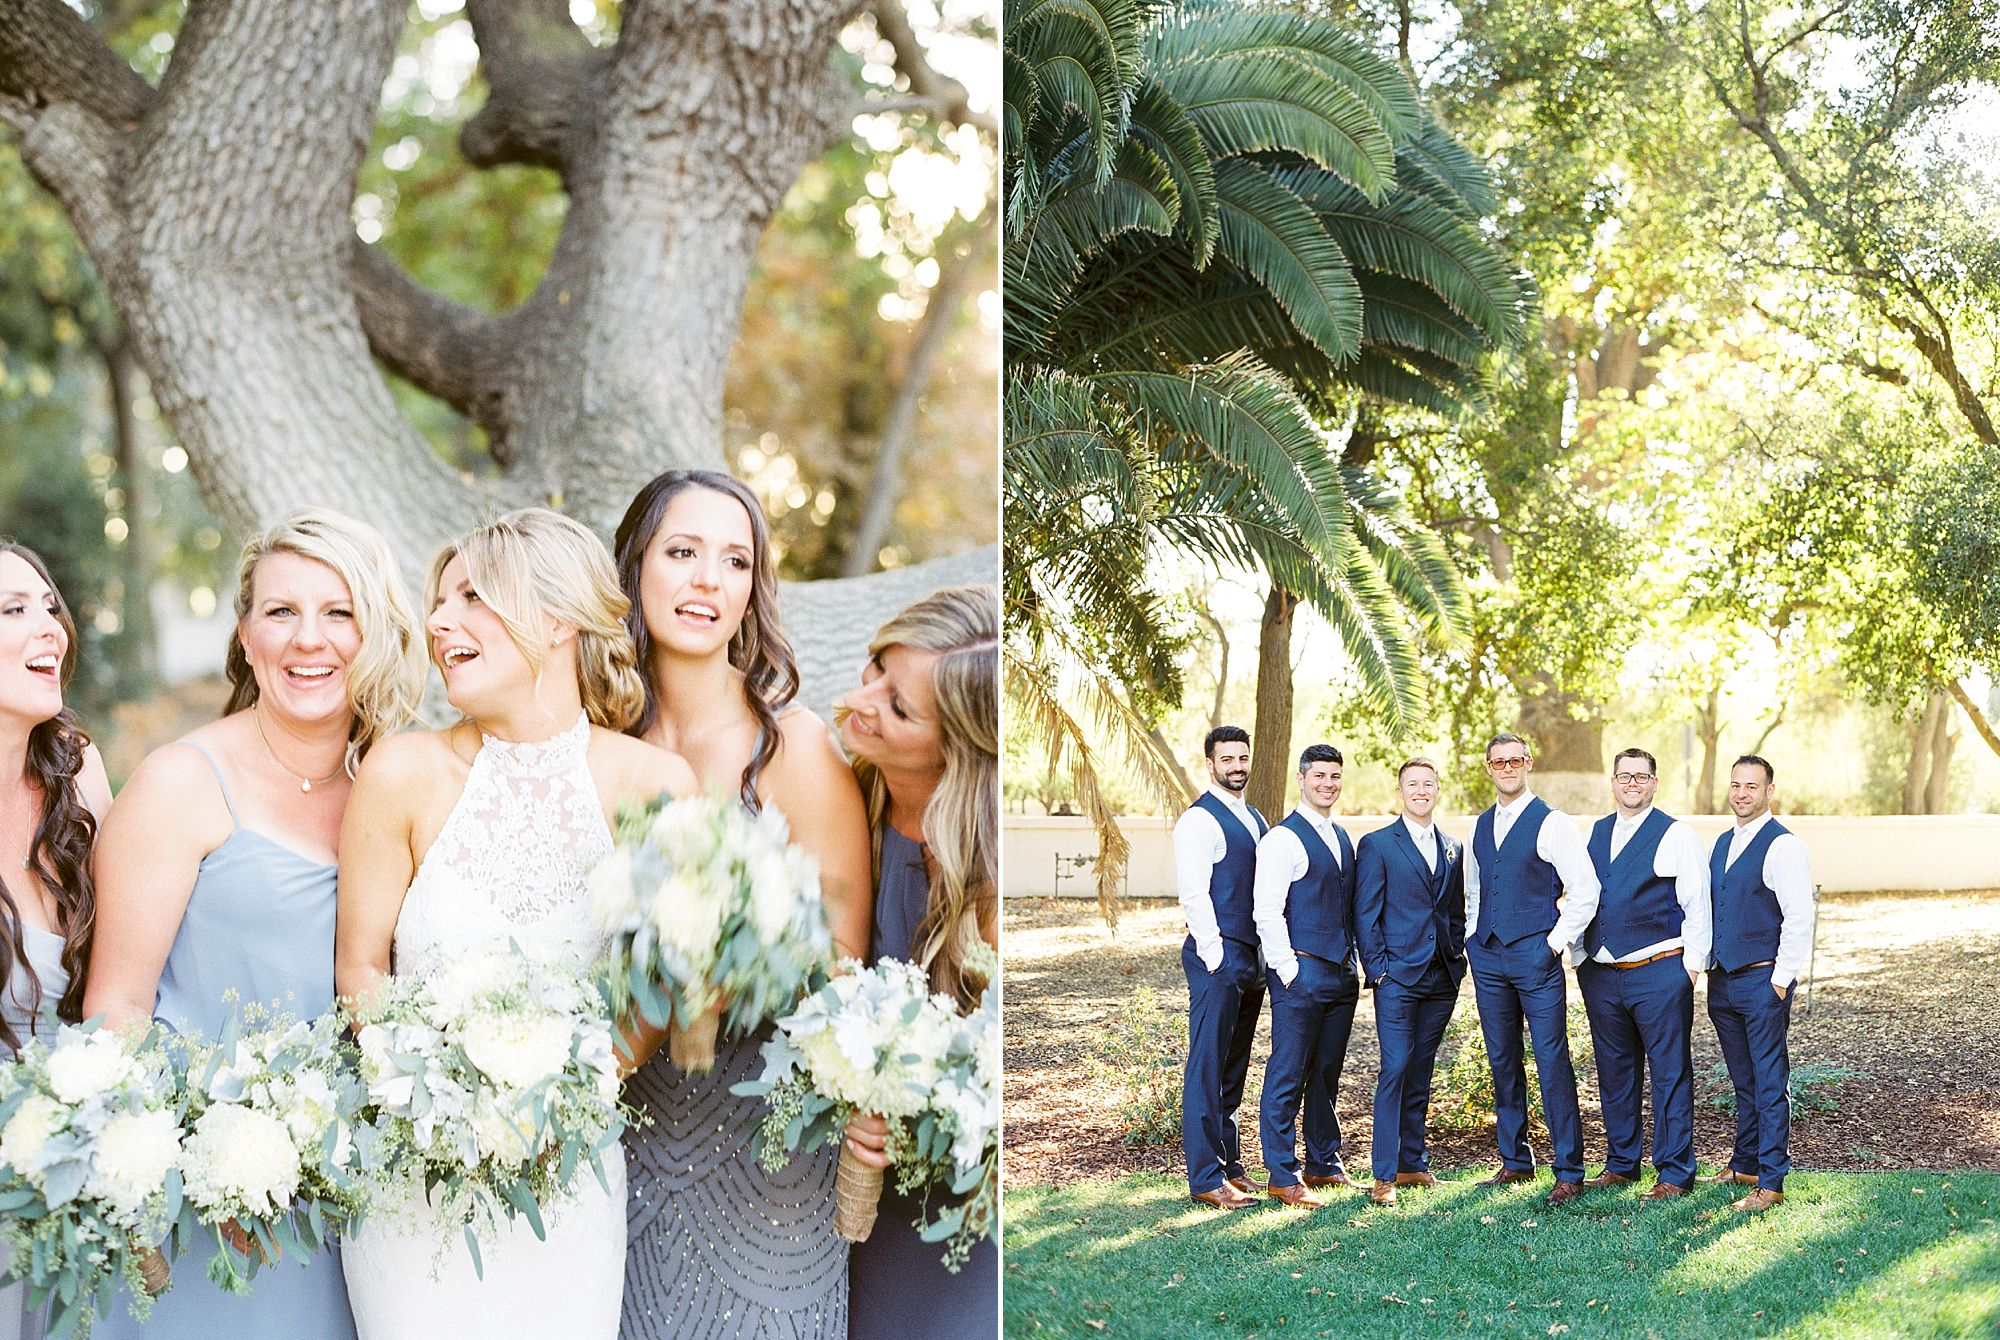 The Maples Wedding in Woodland California - Ashley Baumgartner - Sacramento Wedding Photographer - Sacramento Film Photographer_0021.jpg